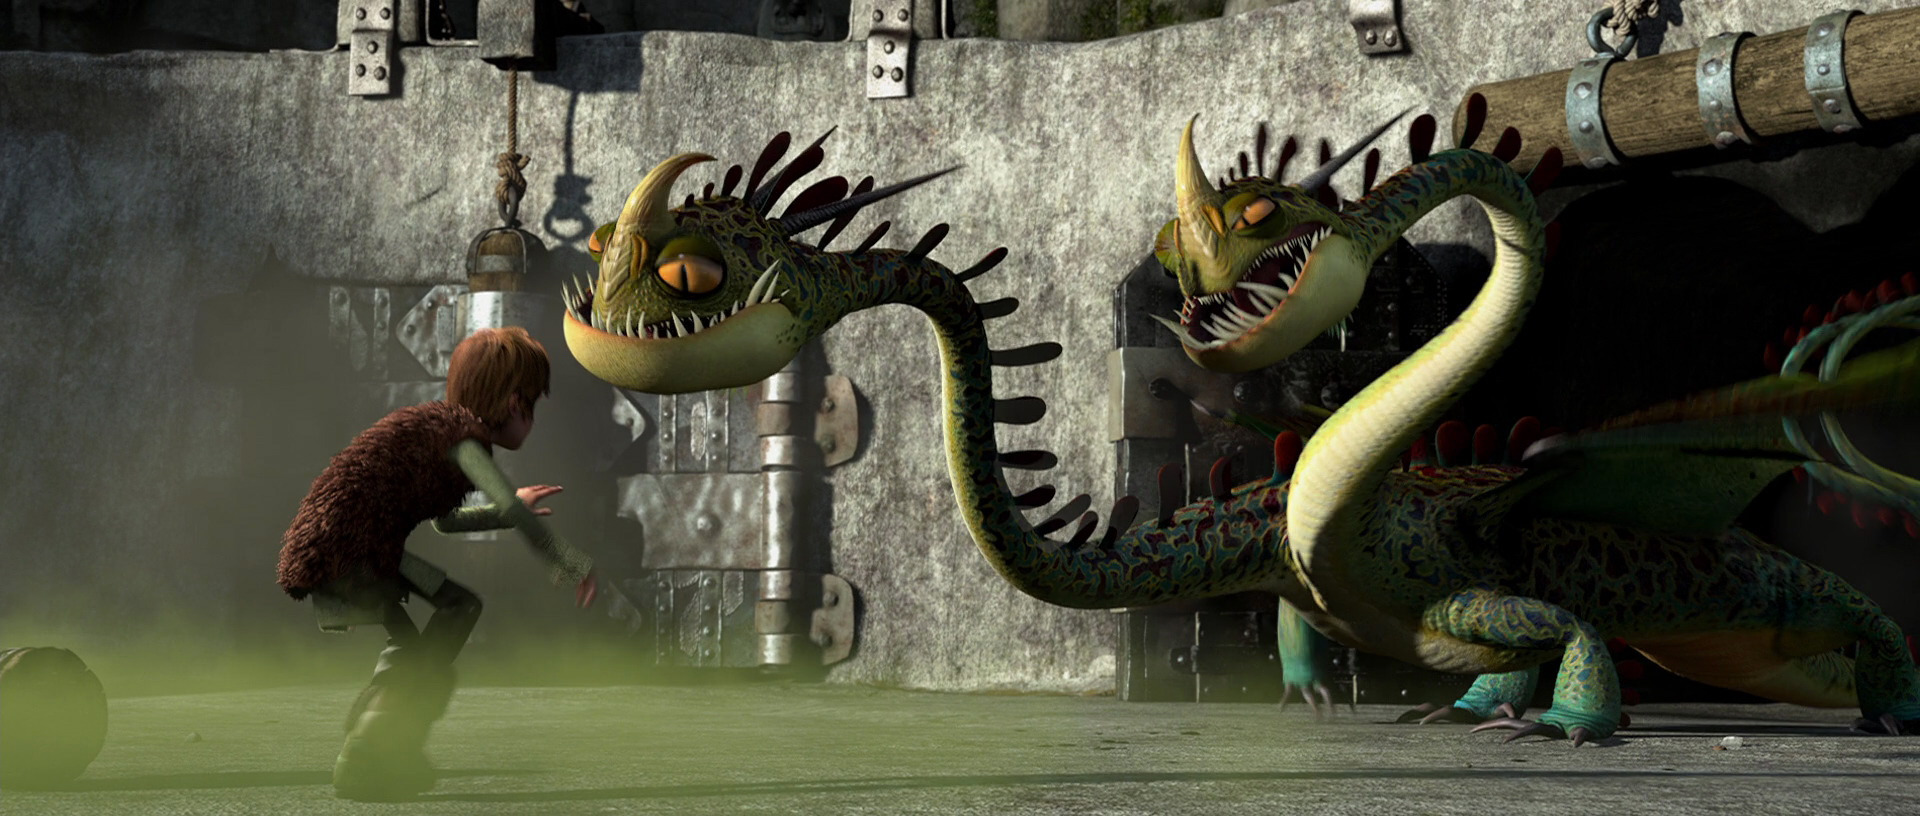 how to train your dragon gobber the belch wallpaper